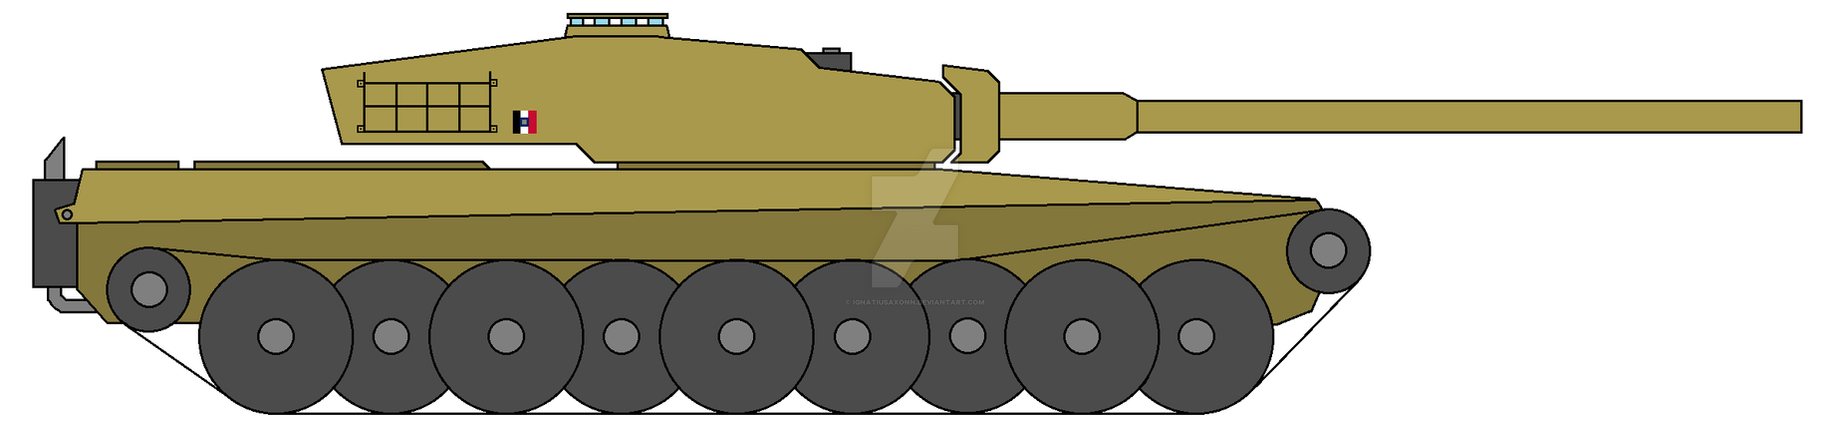 MBT Panther Ausf. B by IgnatiusAxonn